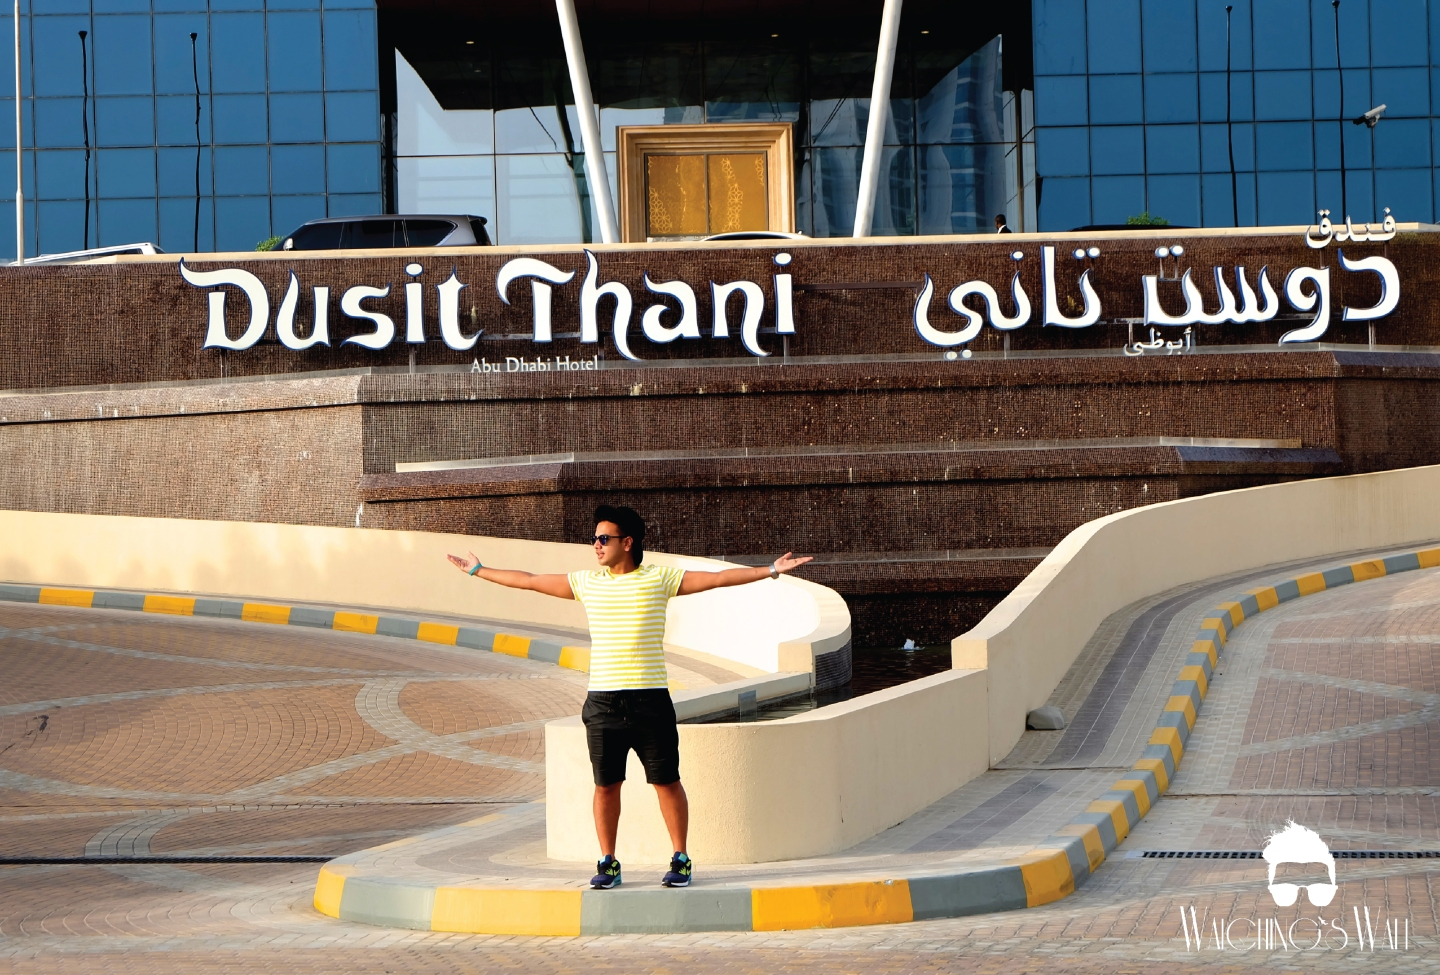 Dusit Thani_Hotel and Welcome_Waiching's Wall-11